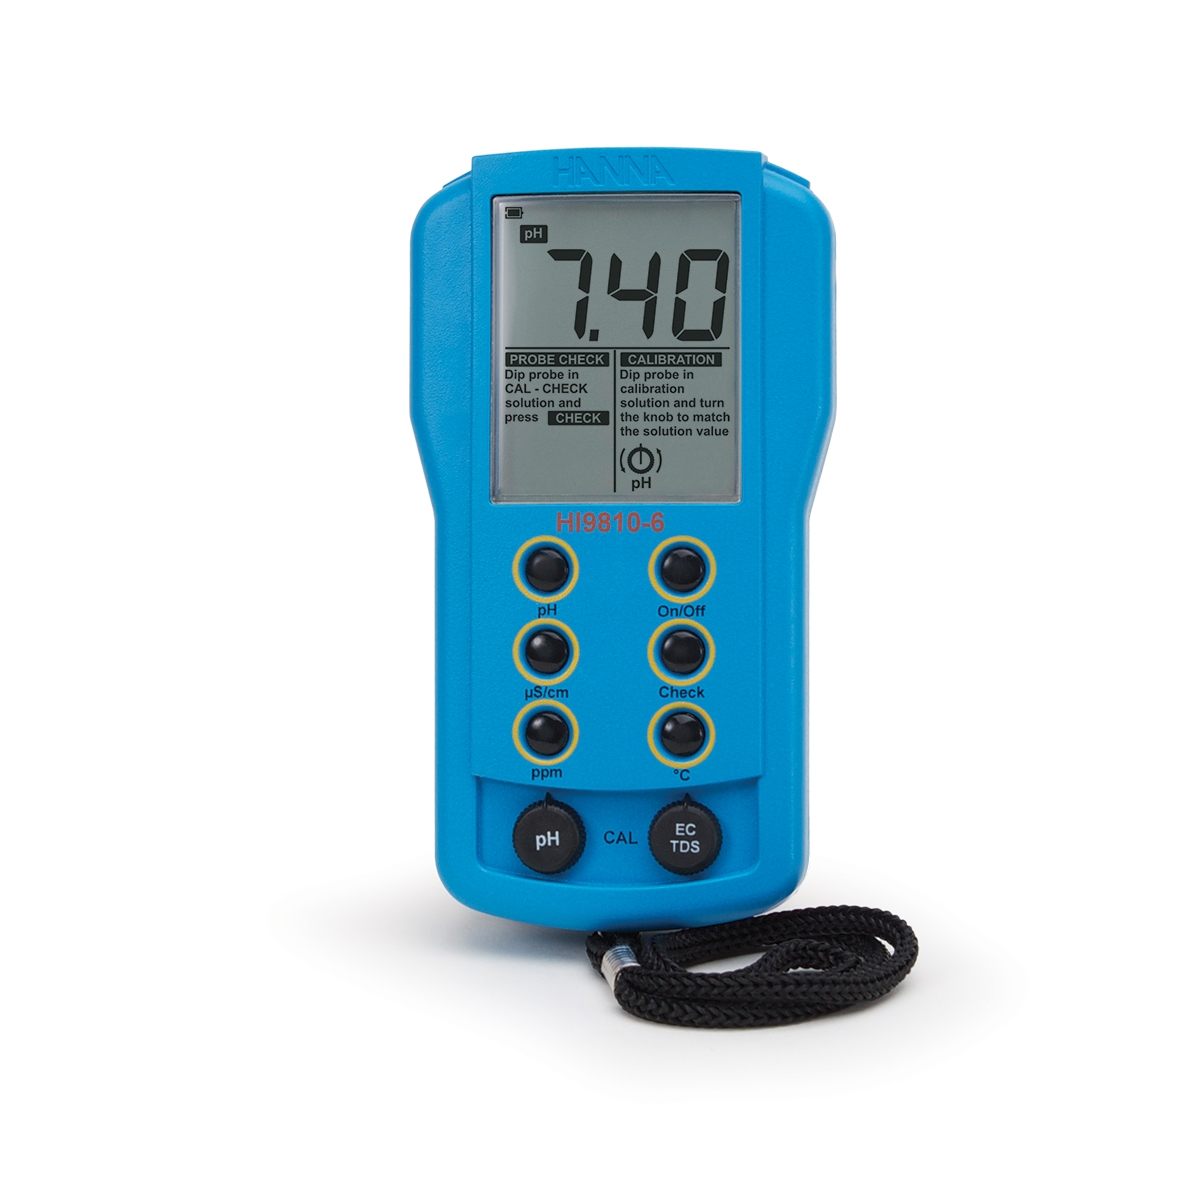 Portable pH/EC/TDS Meter - HI9810-6